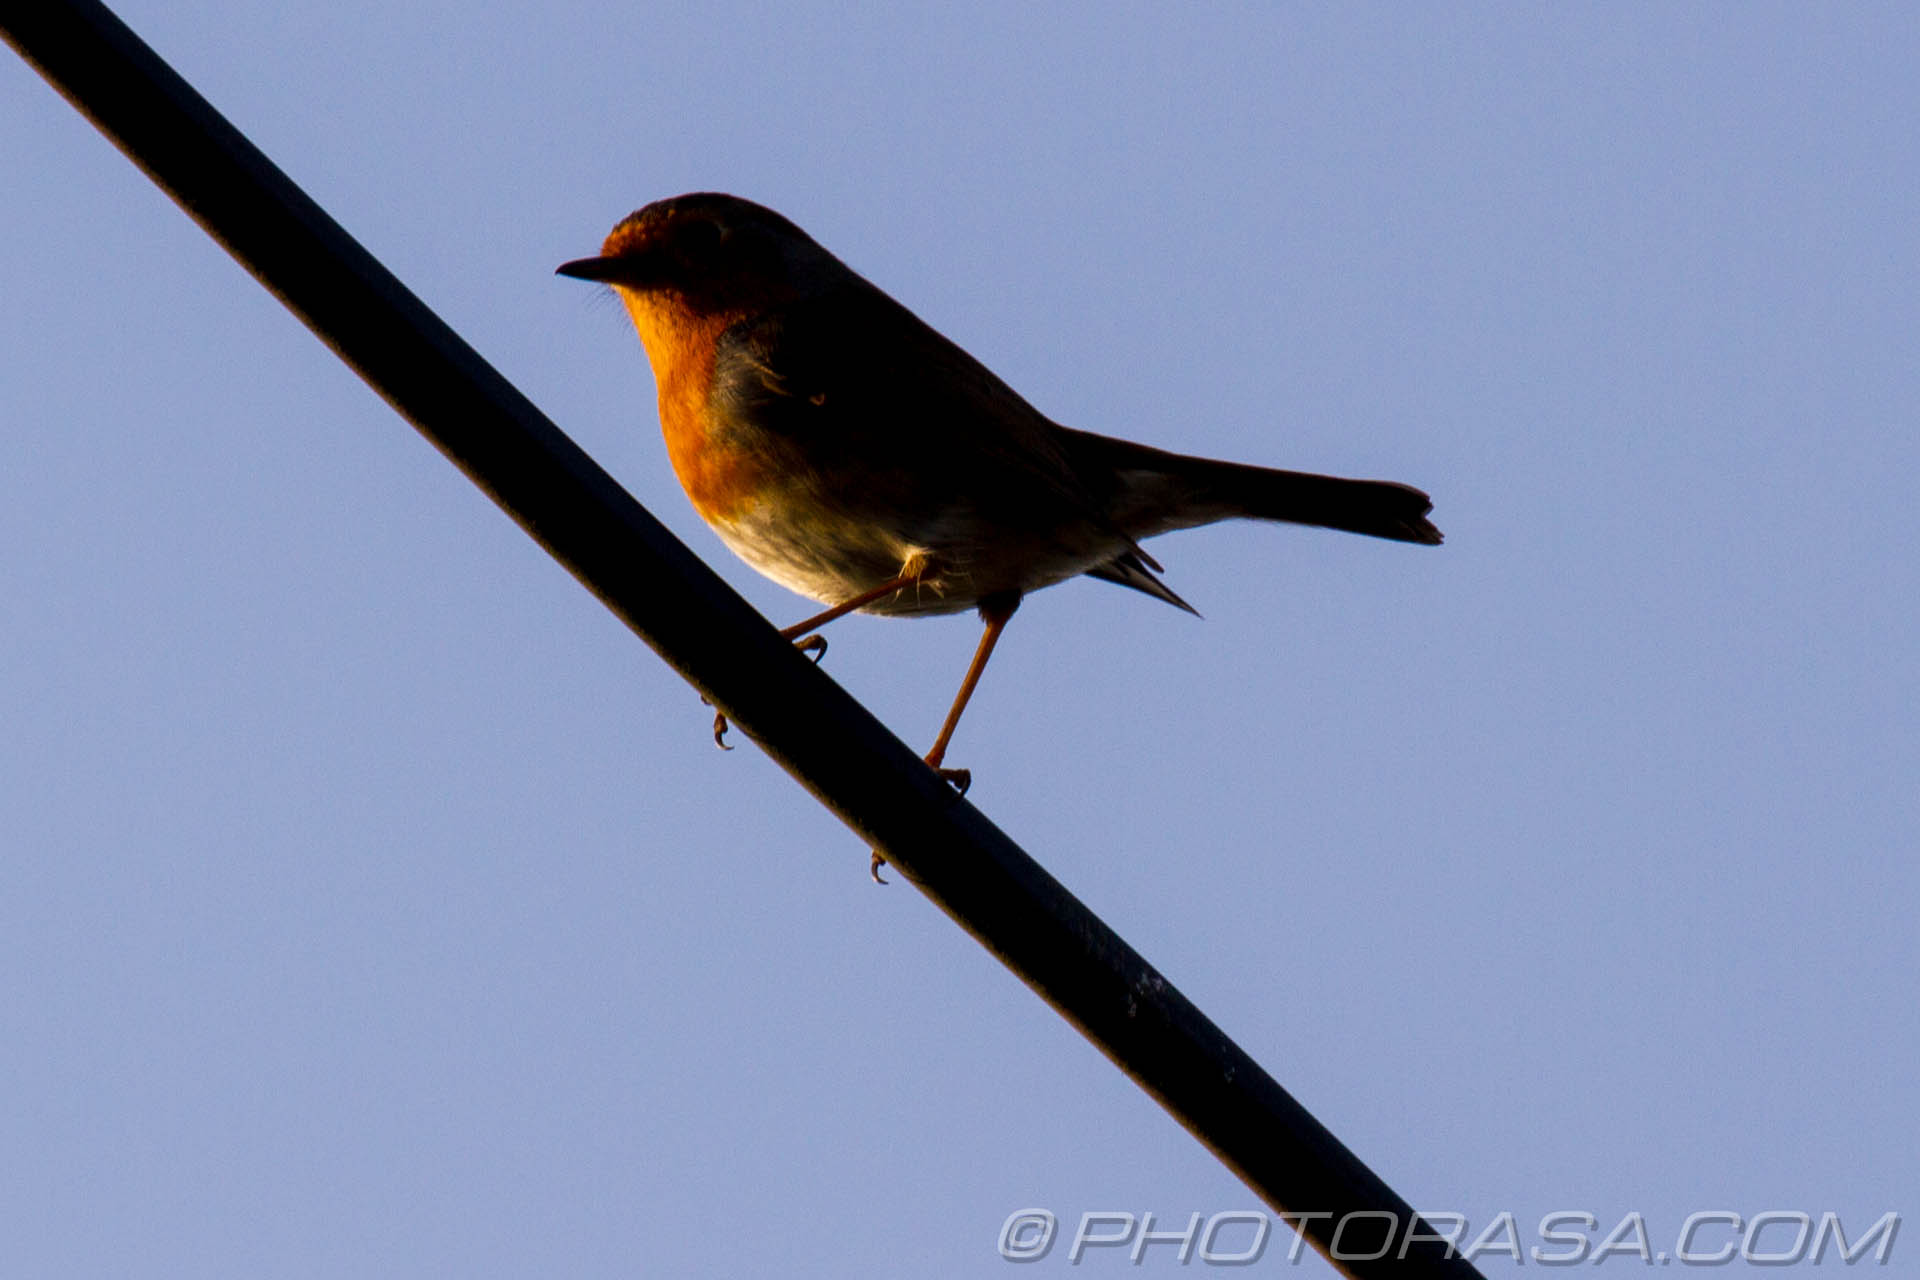 http://photorasa.com/robins/robin-on-telephone-line/